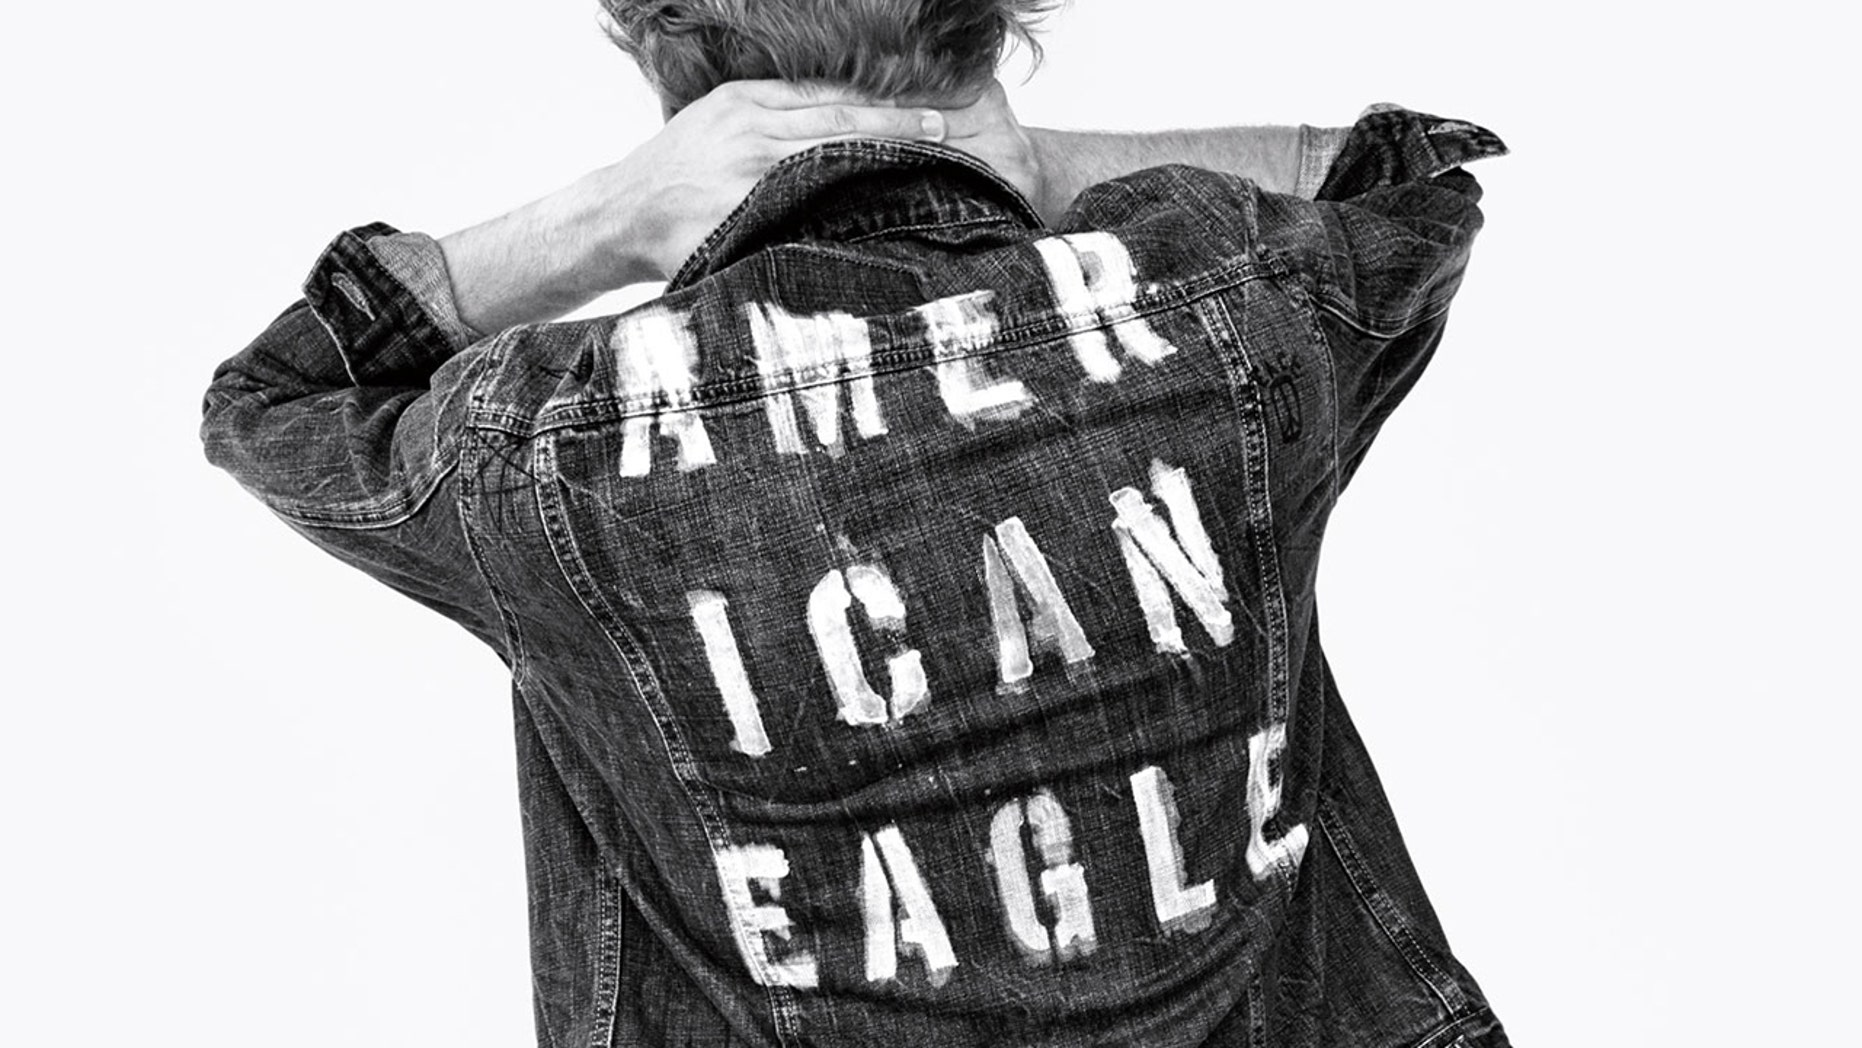 American Eagle apologized for offending New Yorkers with its collection of shirts.